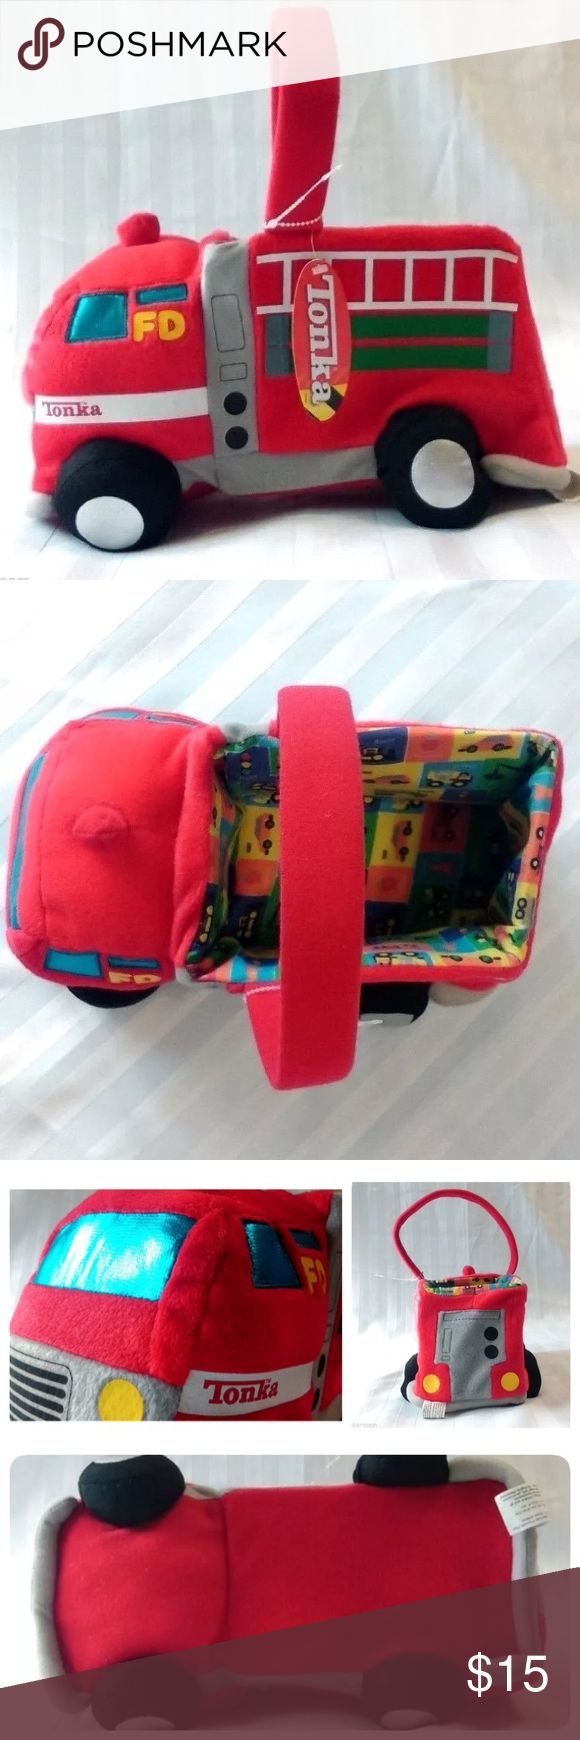 🚒NWT Tonka Fire Truck Plush Basket Tote Hasbro Tonka Fire Truck Plush Basket Tote for toys or accessories! The approximate length and width of plush basket is 12in. x 7in. Without the measurements of carrying handle. And inside basket measurements are 7in x 4.5in x 3in NEW WITH TAGS ***Hasbro*** Year 2008 All our listings come from a smoke free home. Hasbro Accessories Bags